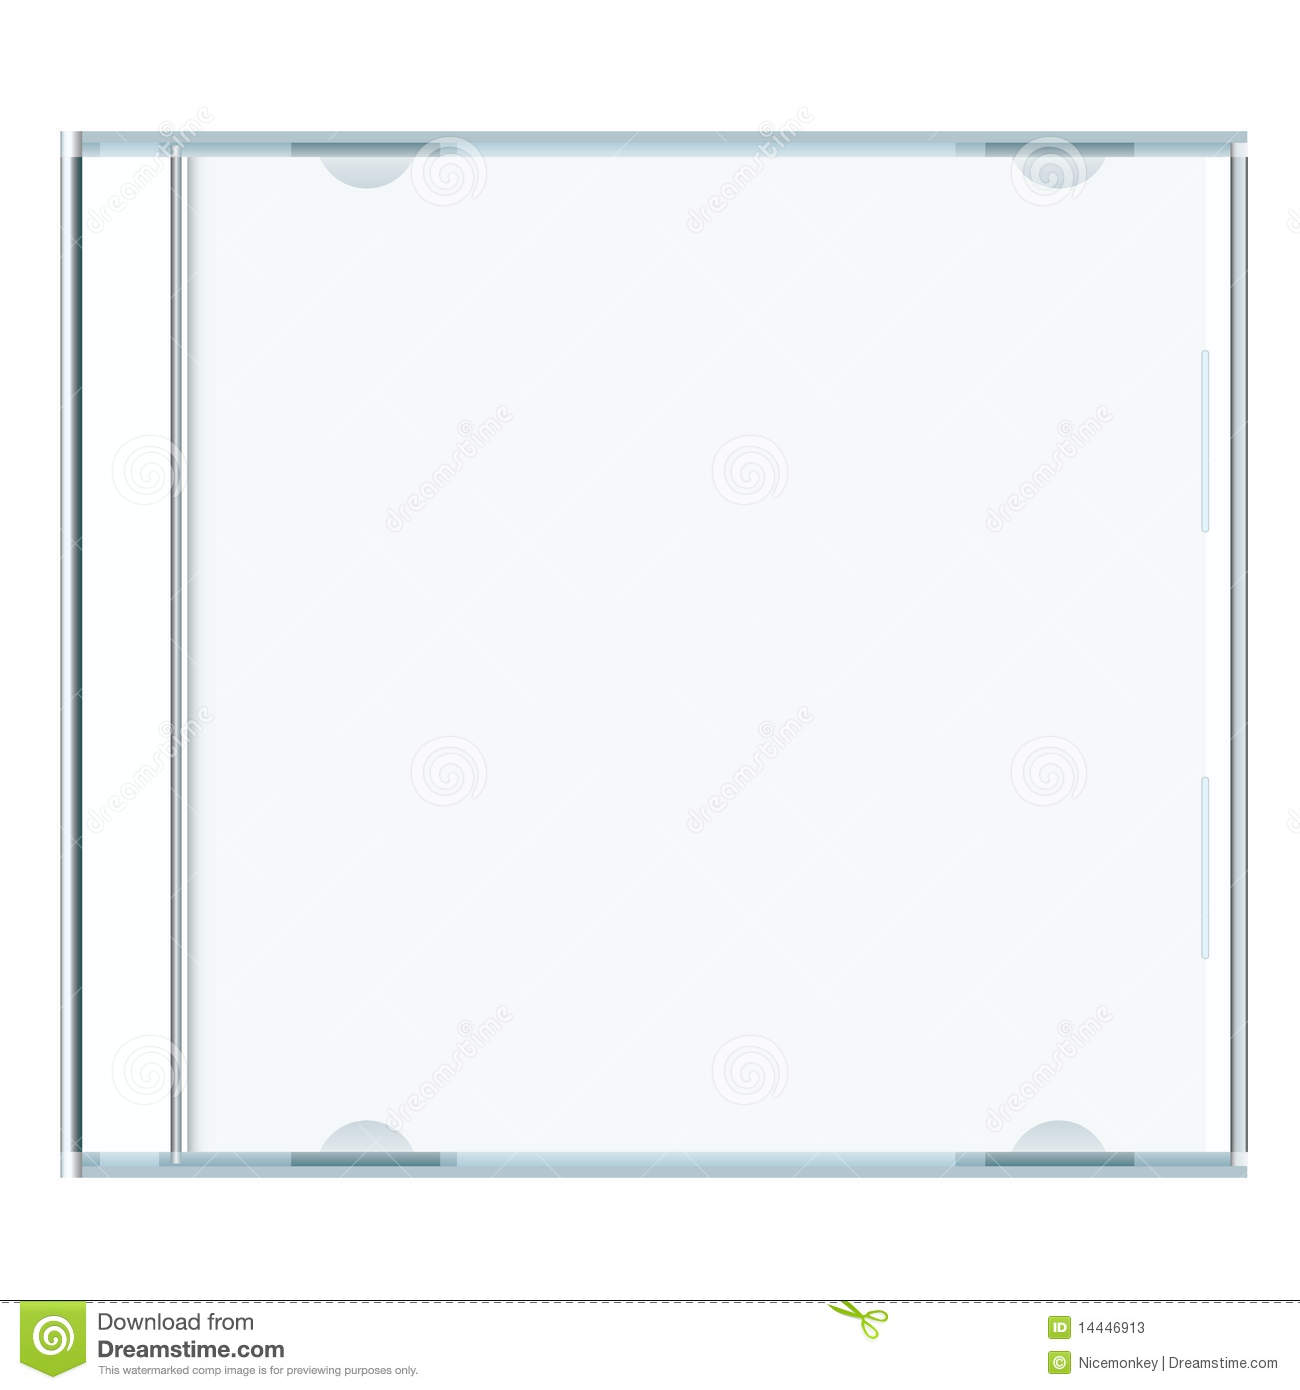 Cd cover clipart. Stock illustrations vectors blank